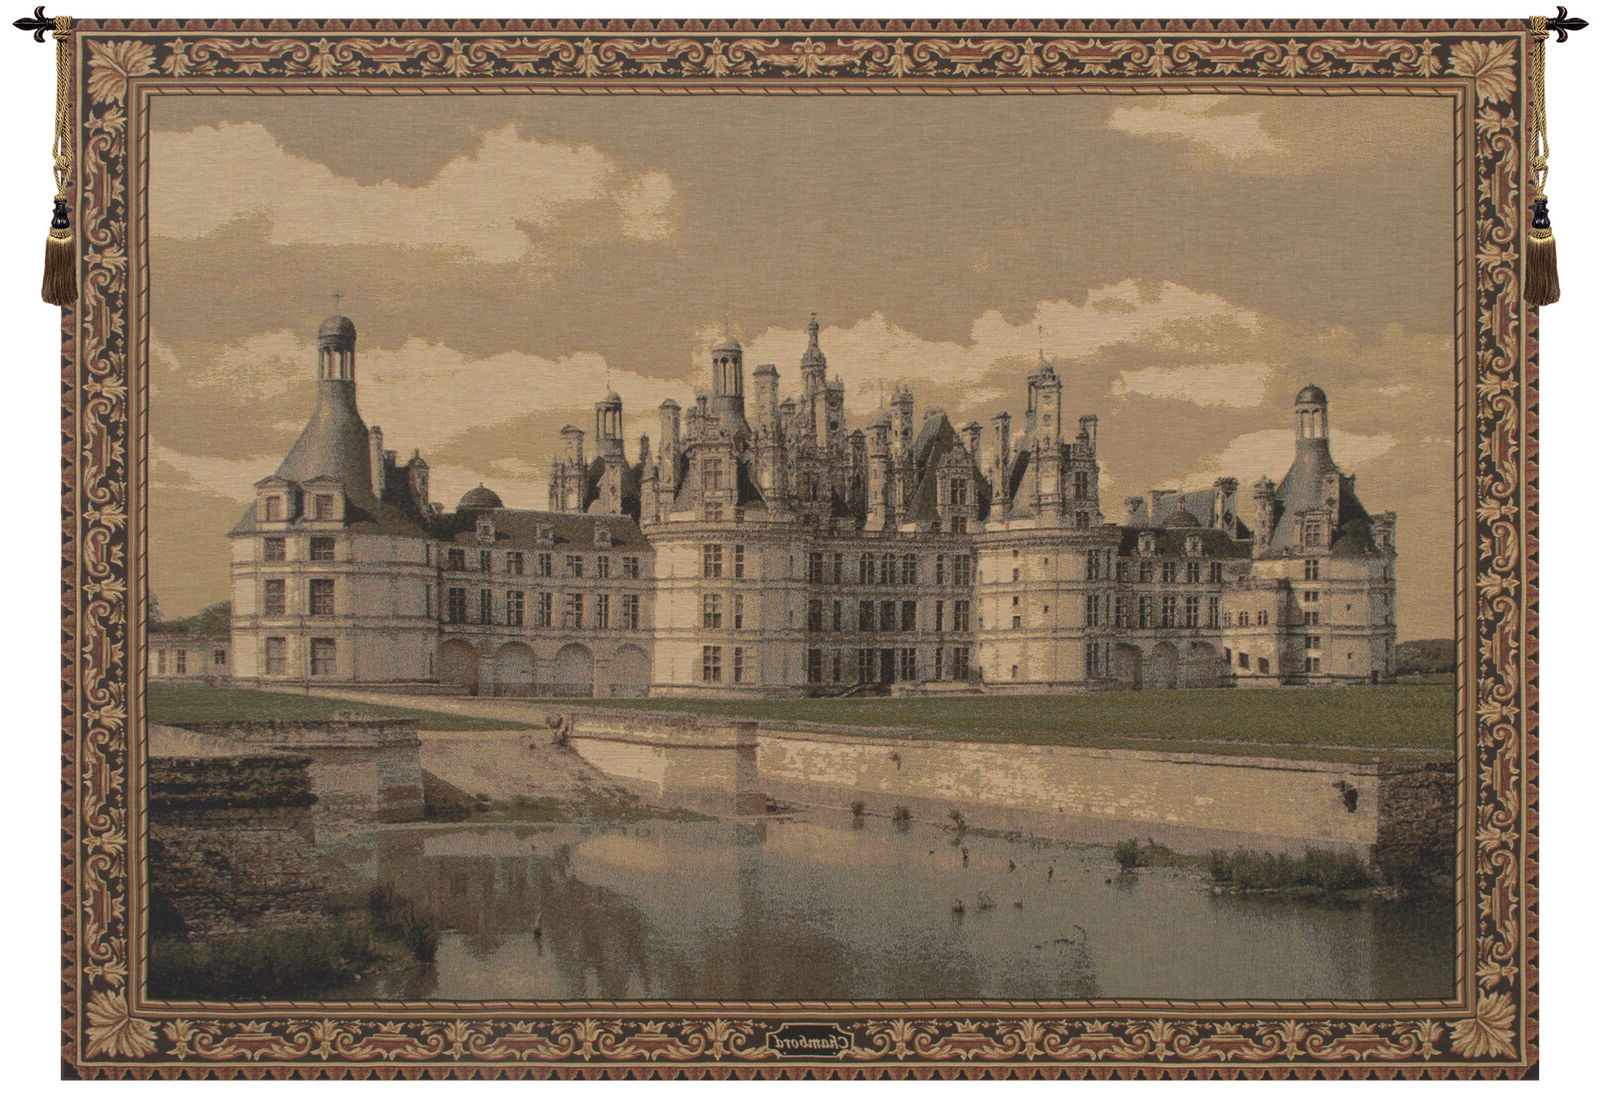 Chambord Castle Belgian Medieval Monument Design Woven Tapestry Wall Hanging Within Trendy Chambord Castle I European Wall Hangings (Gallery 4 of 20)